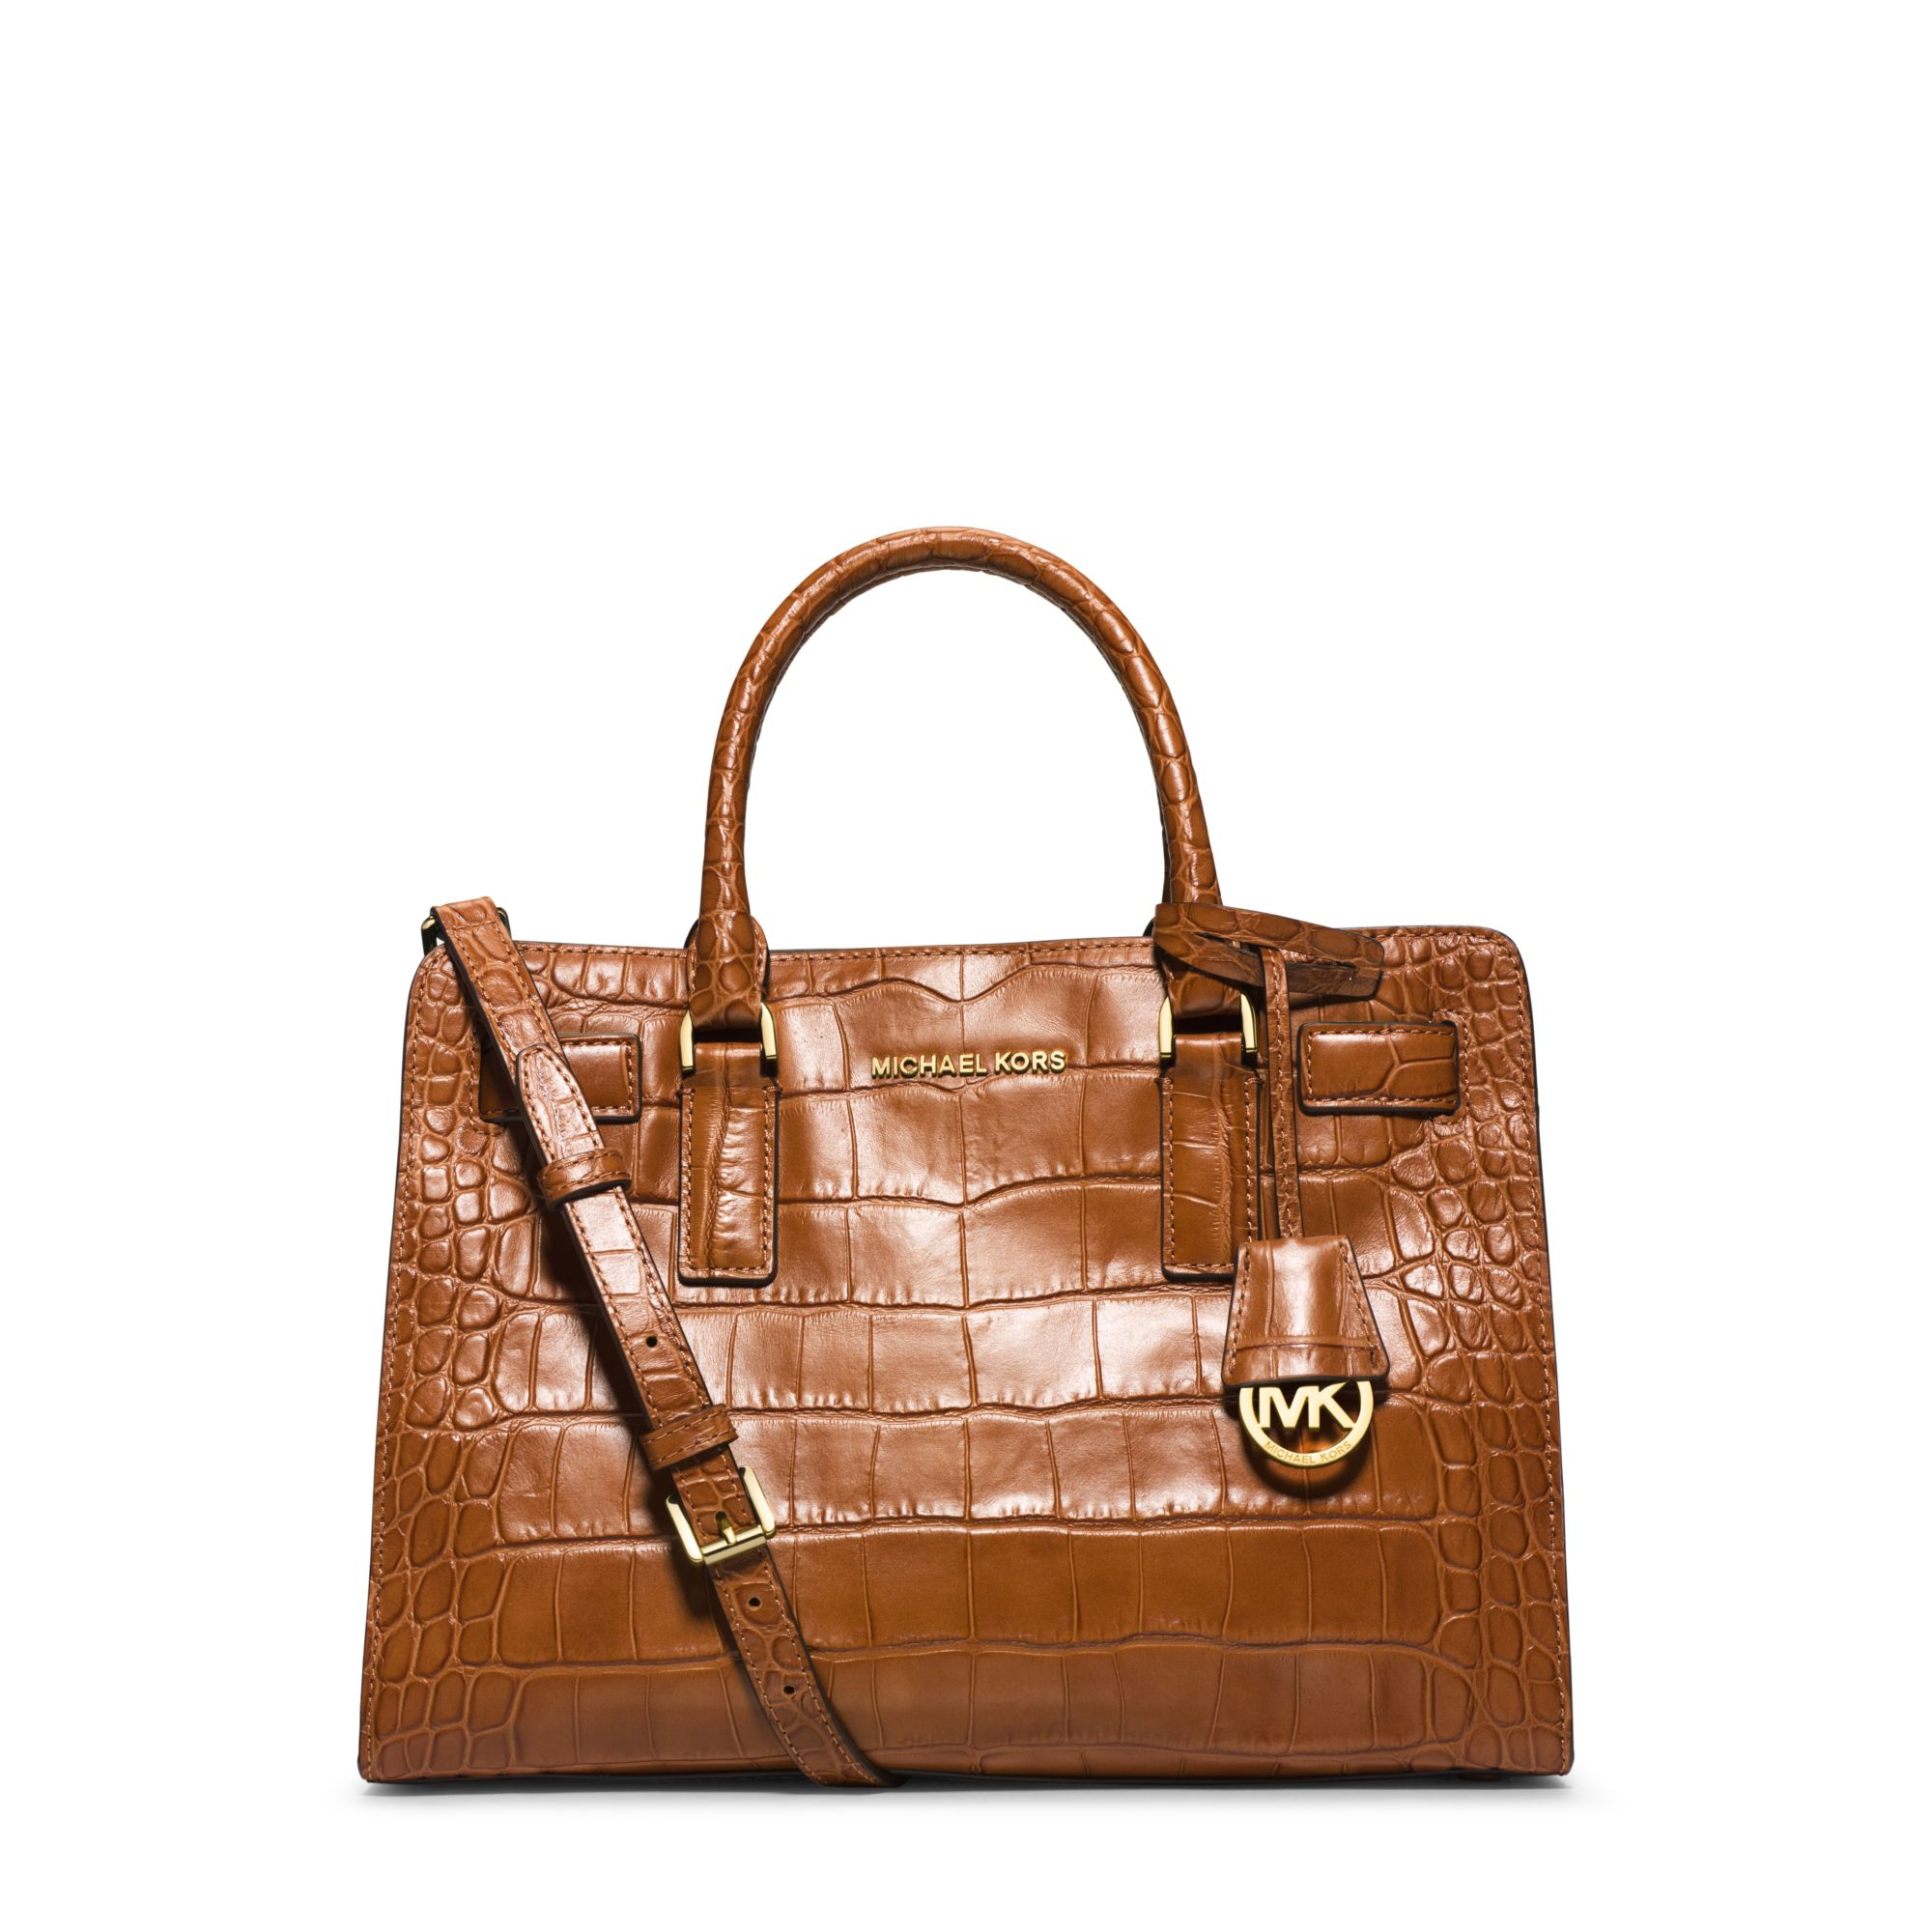 Michael Kors Laukkukoru : Michael kors dillon embossed leather satchel in brown lyst